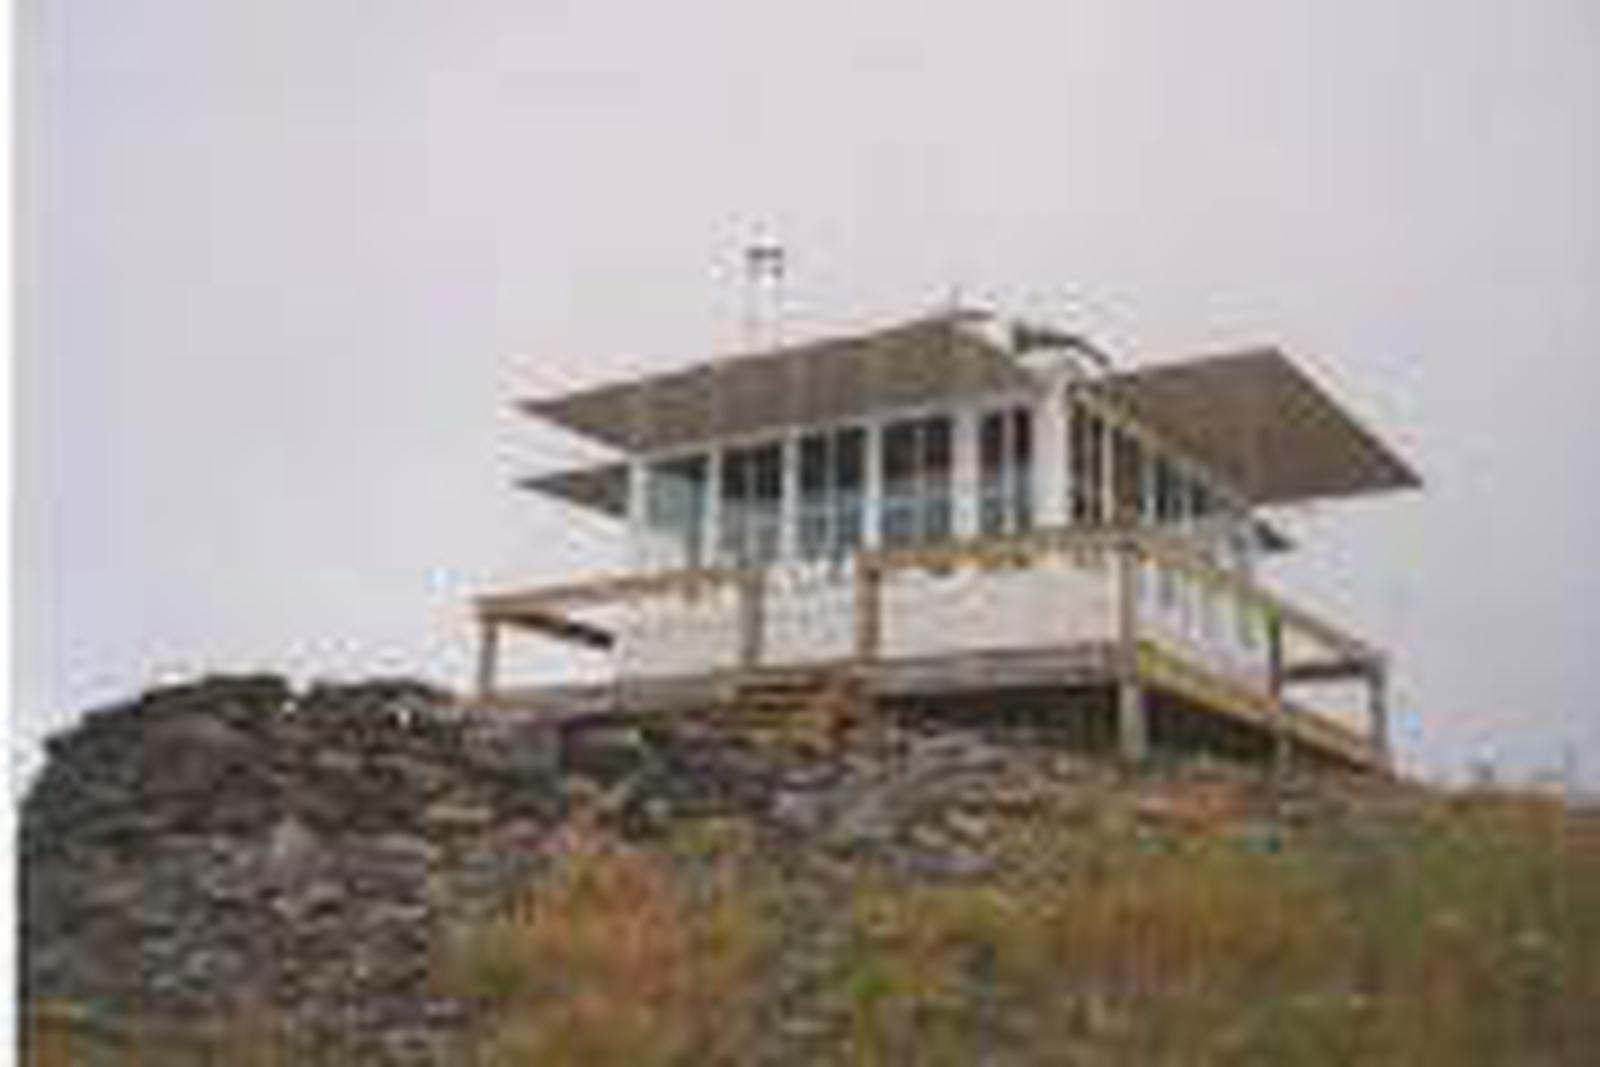 View of Cougar Peak Lookout from the ground below.Cougar Peak Lookout